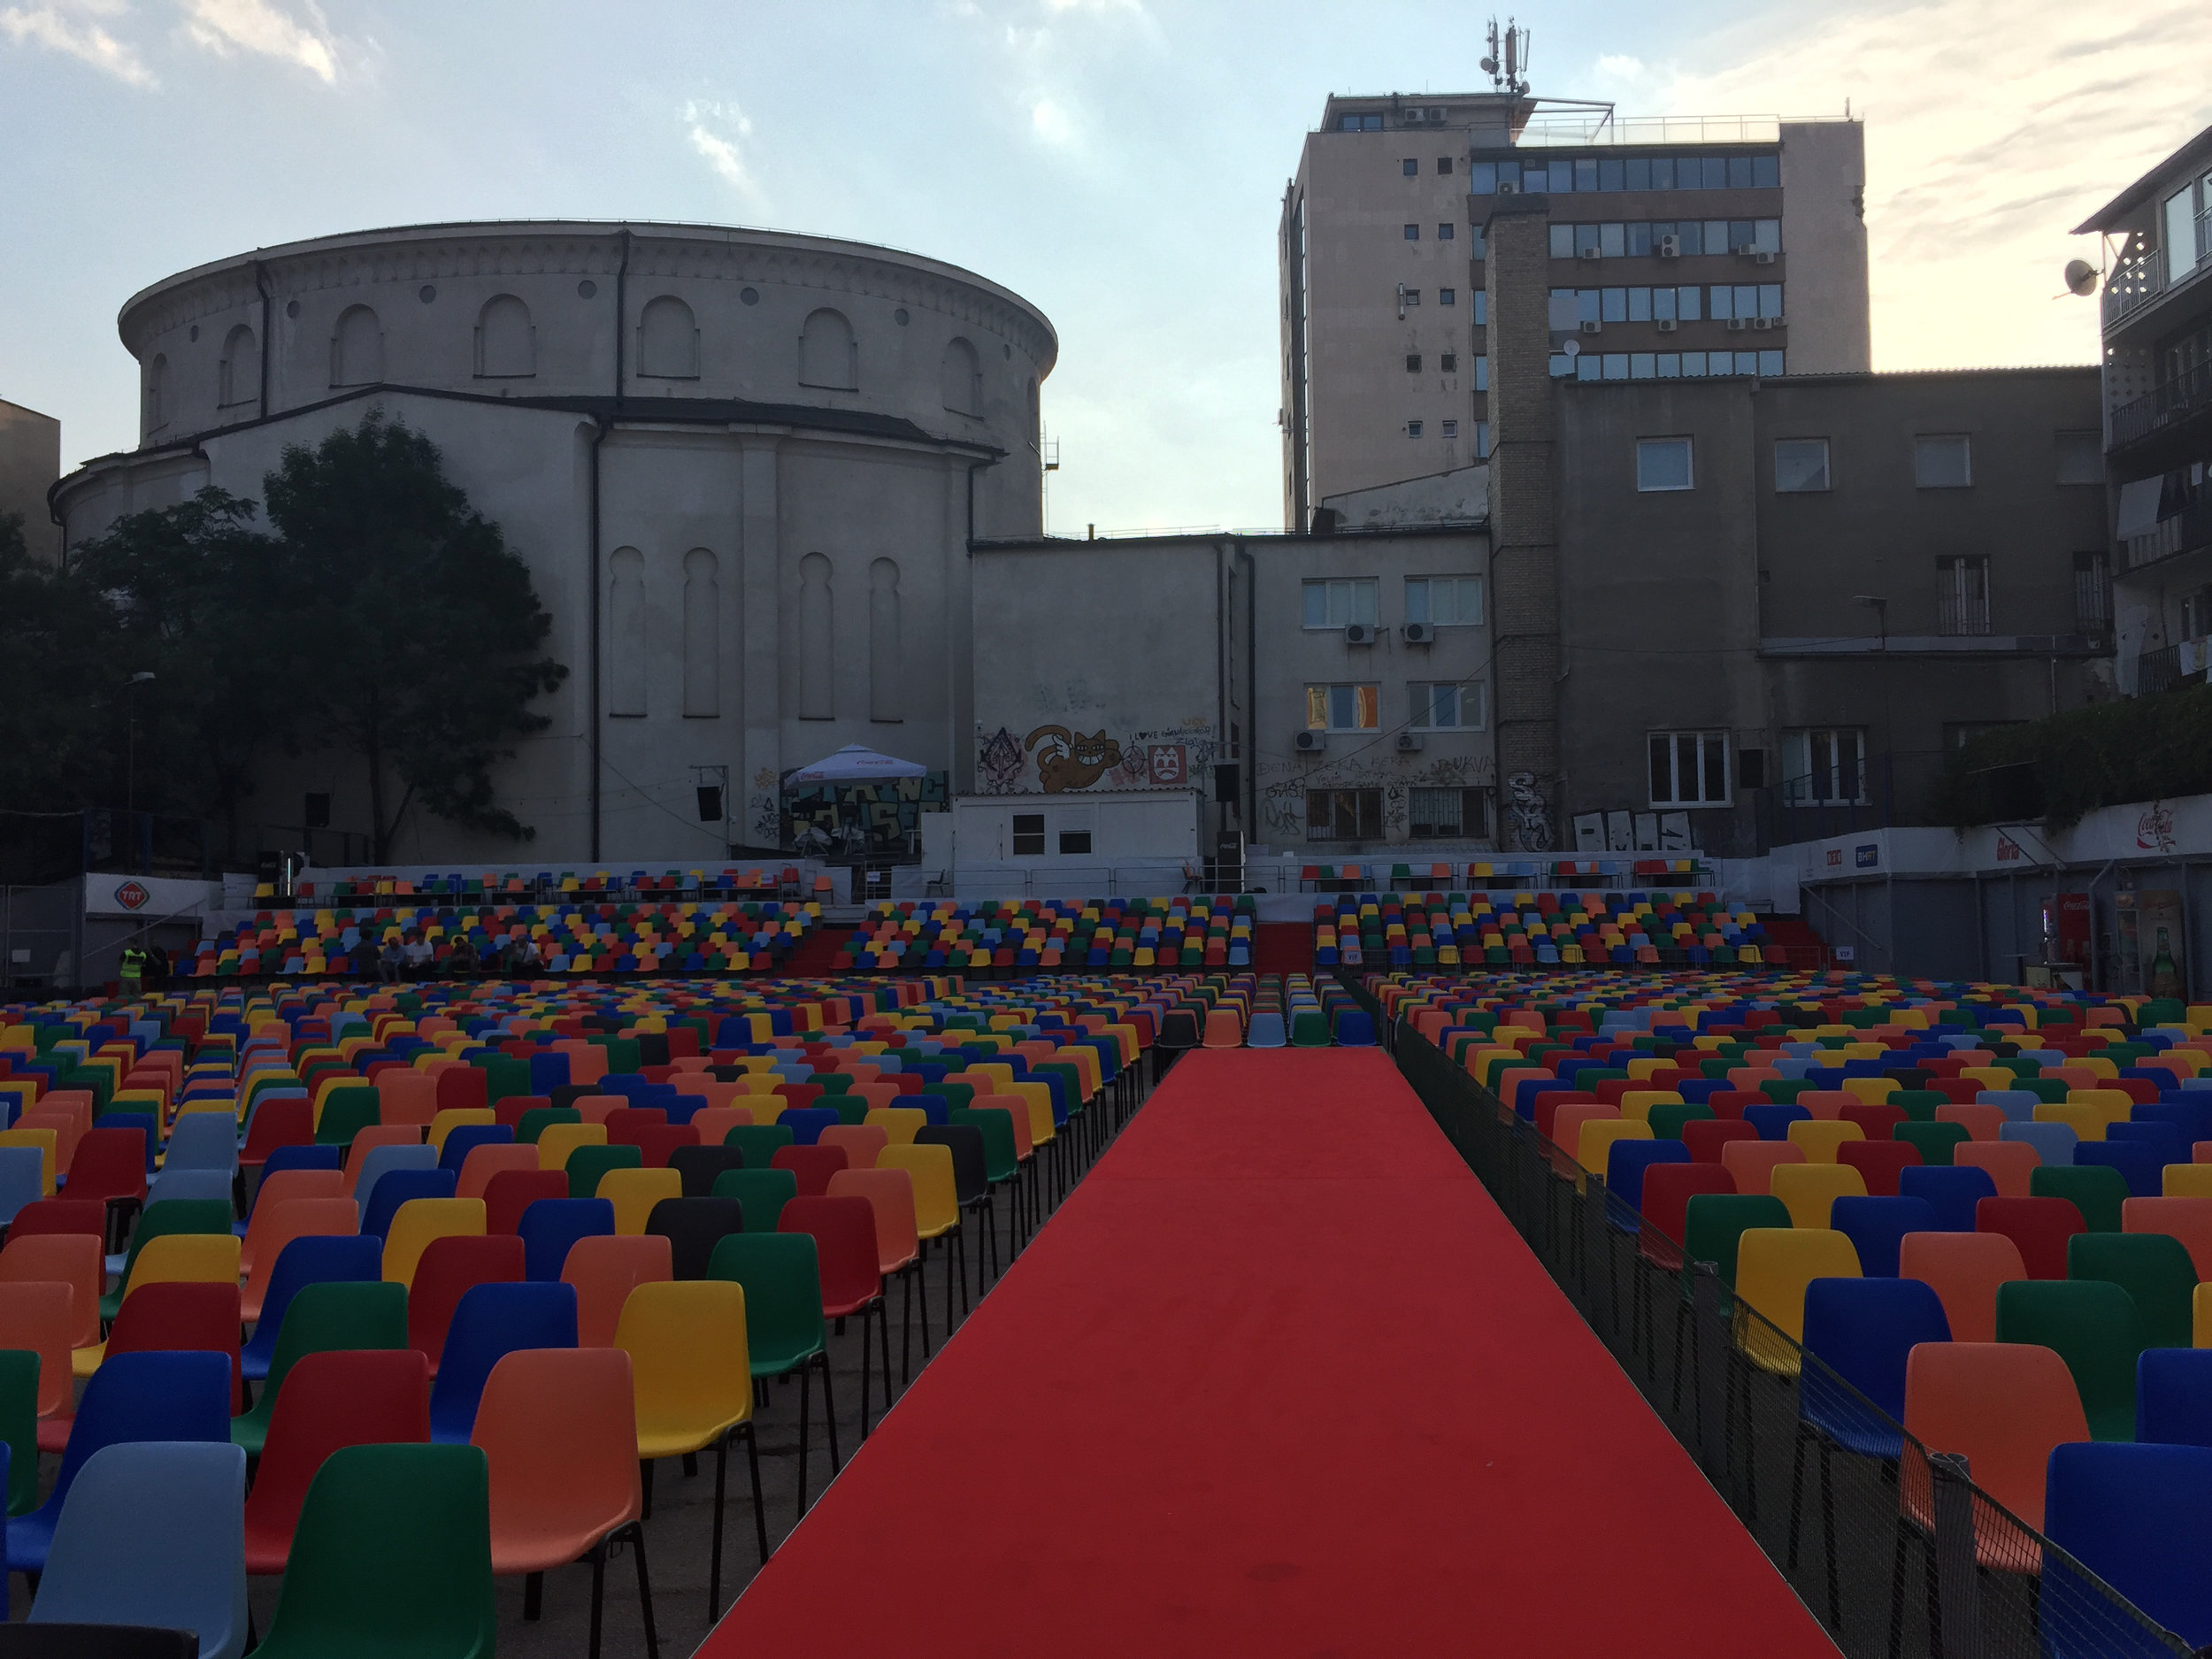 The open air cinema